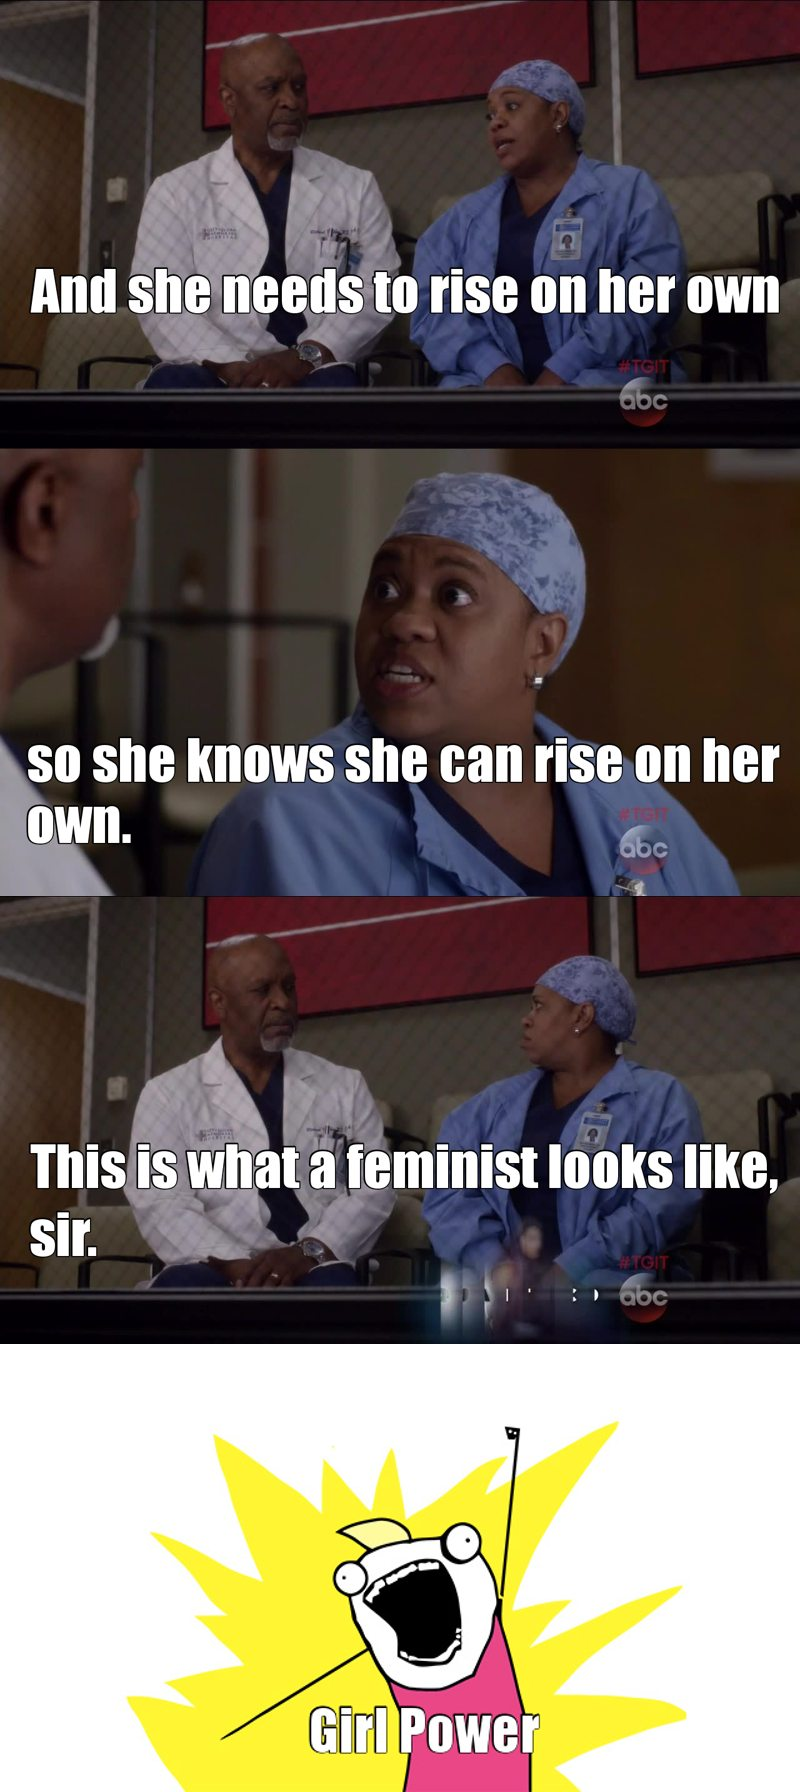 Good explanation of what it means to be a feminist💃